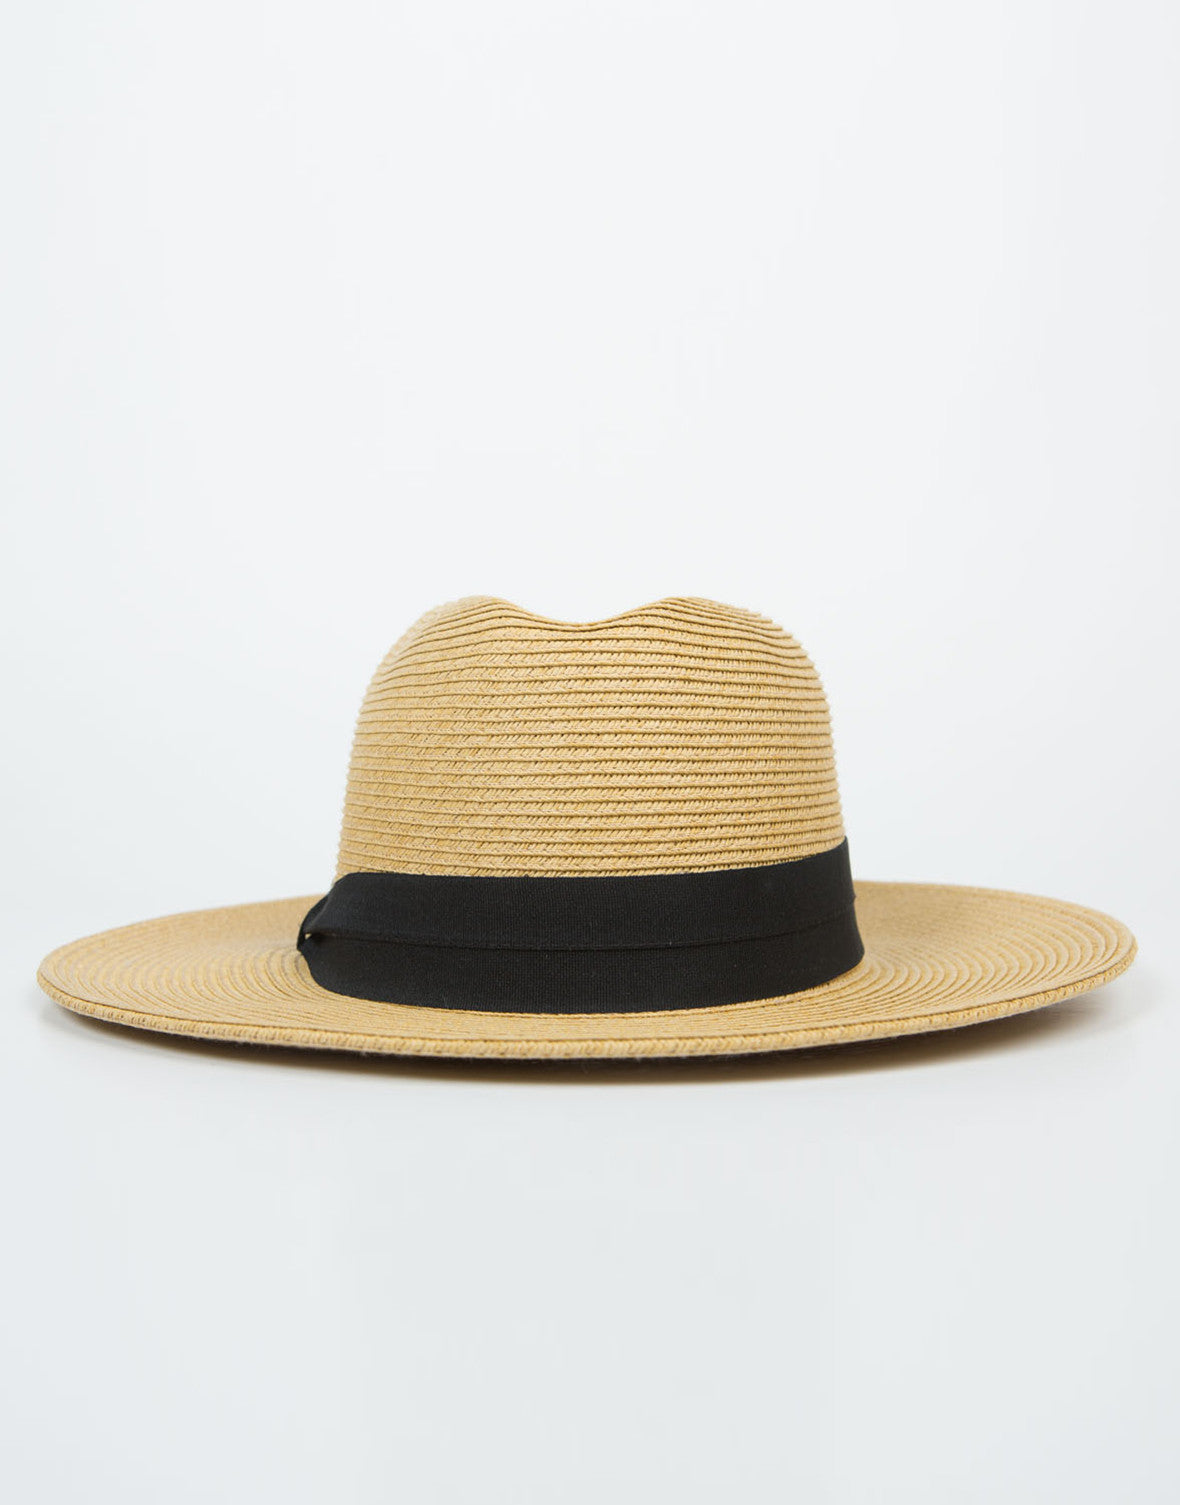 Front View of Wide Brim Straw Hat